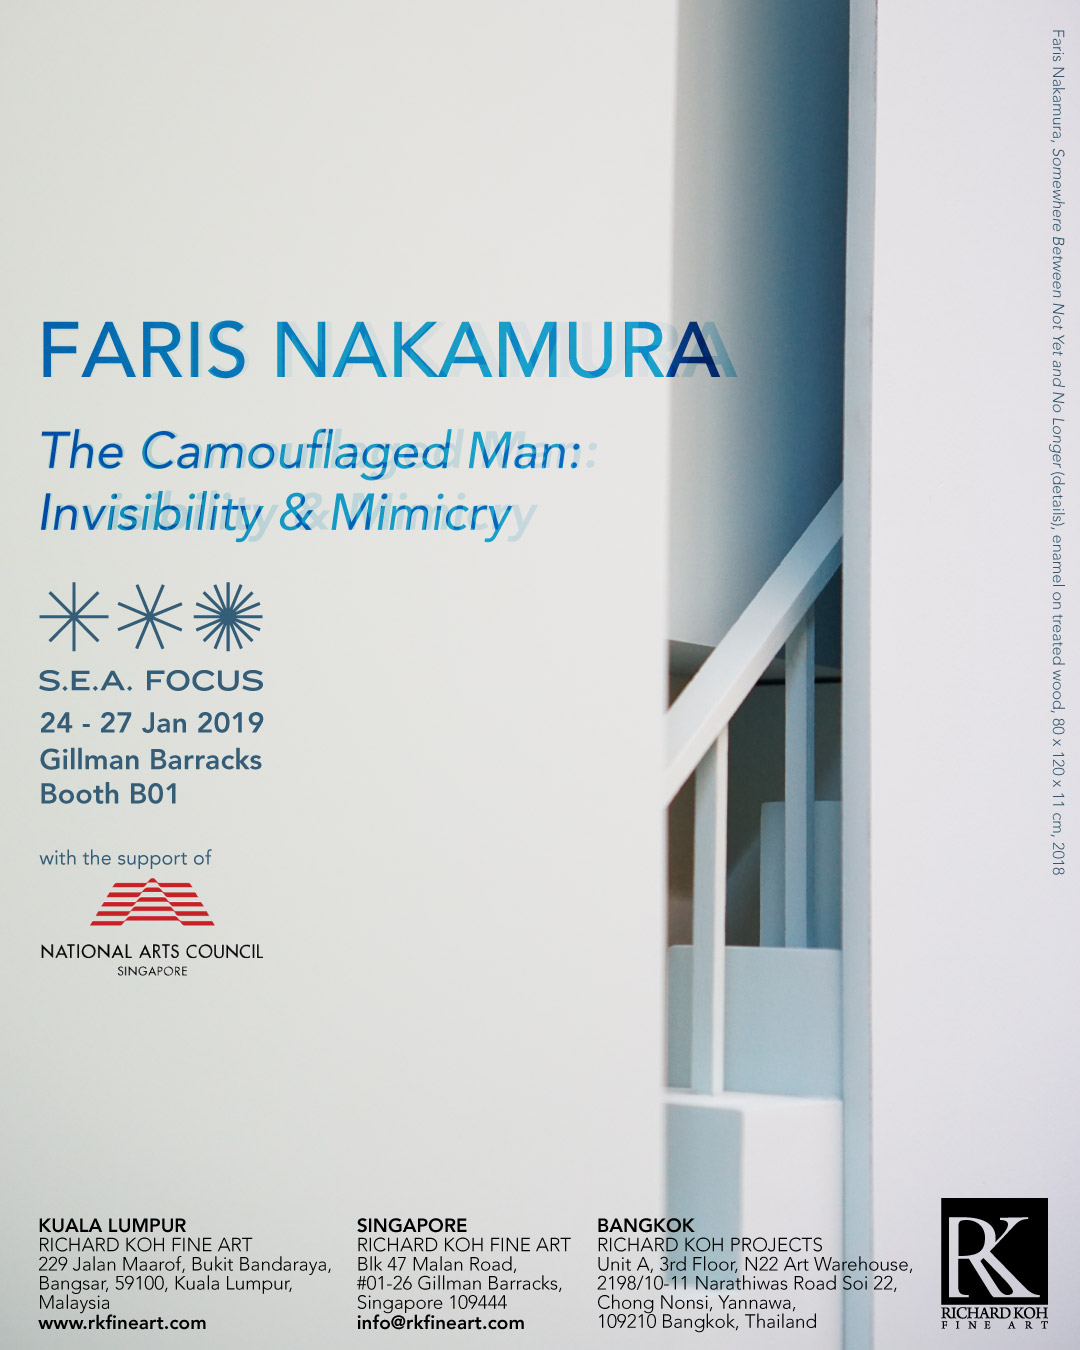 Faris Nakamura – The Camouflaged Man: Invisibility & Mimicry